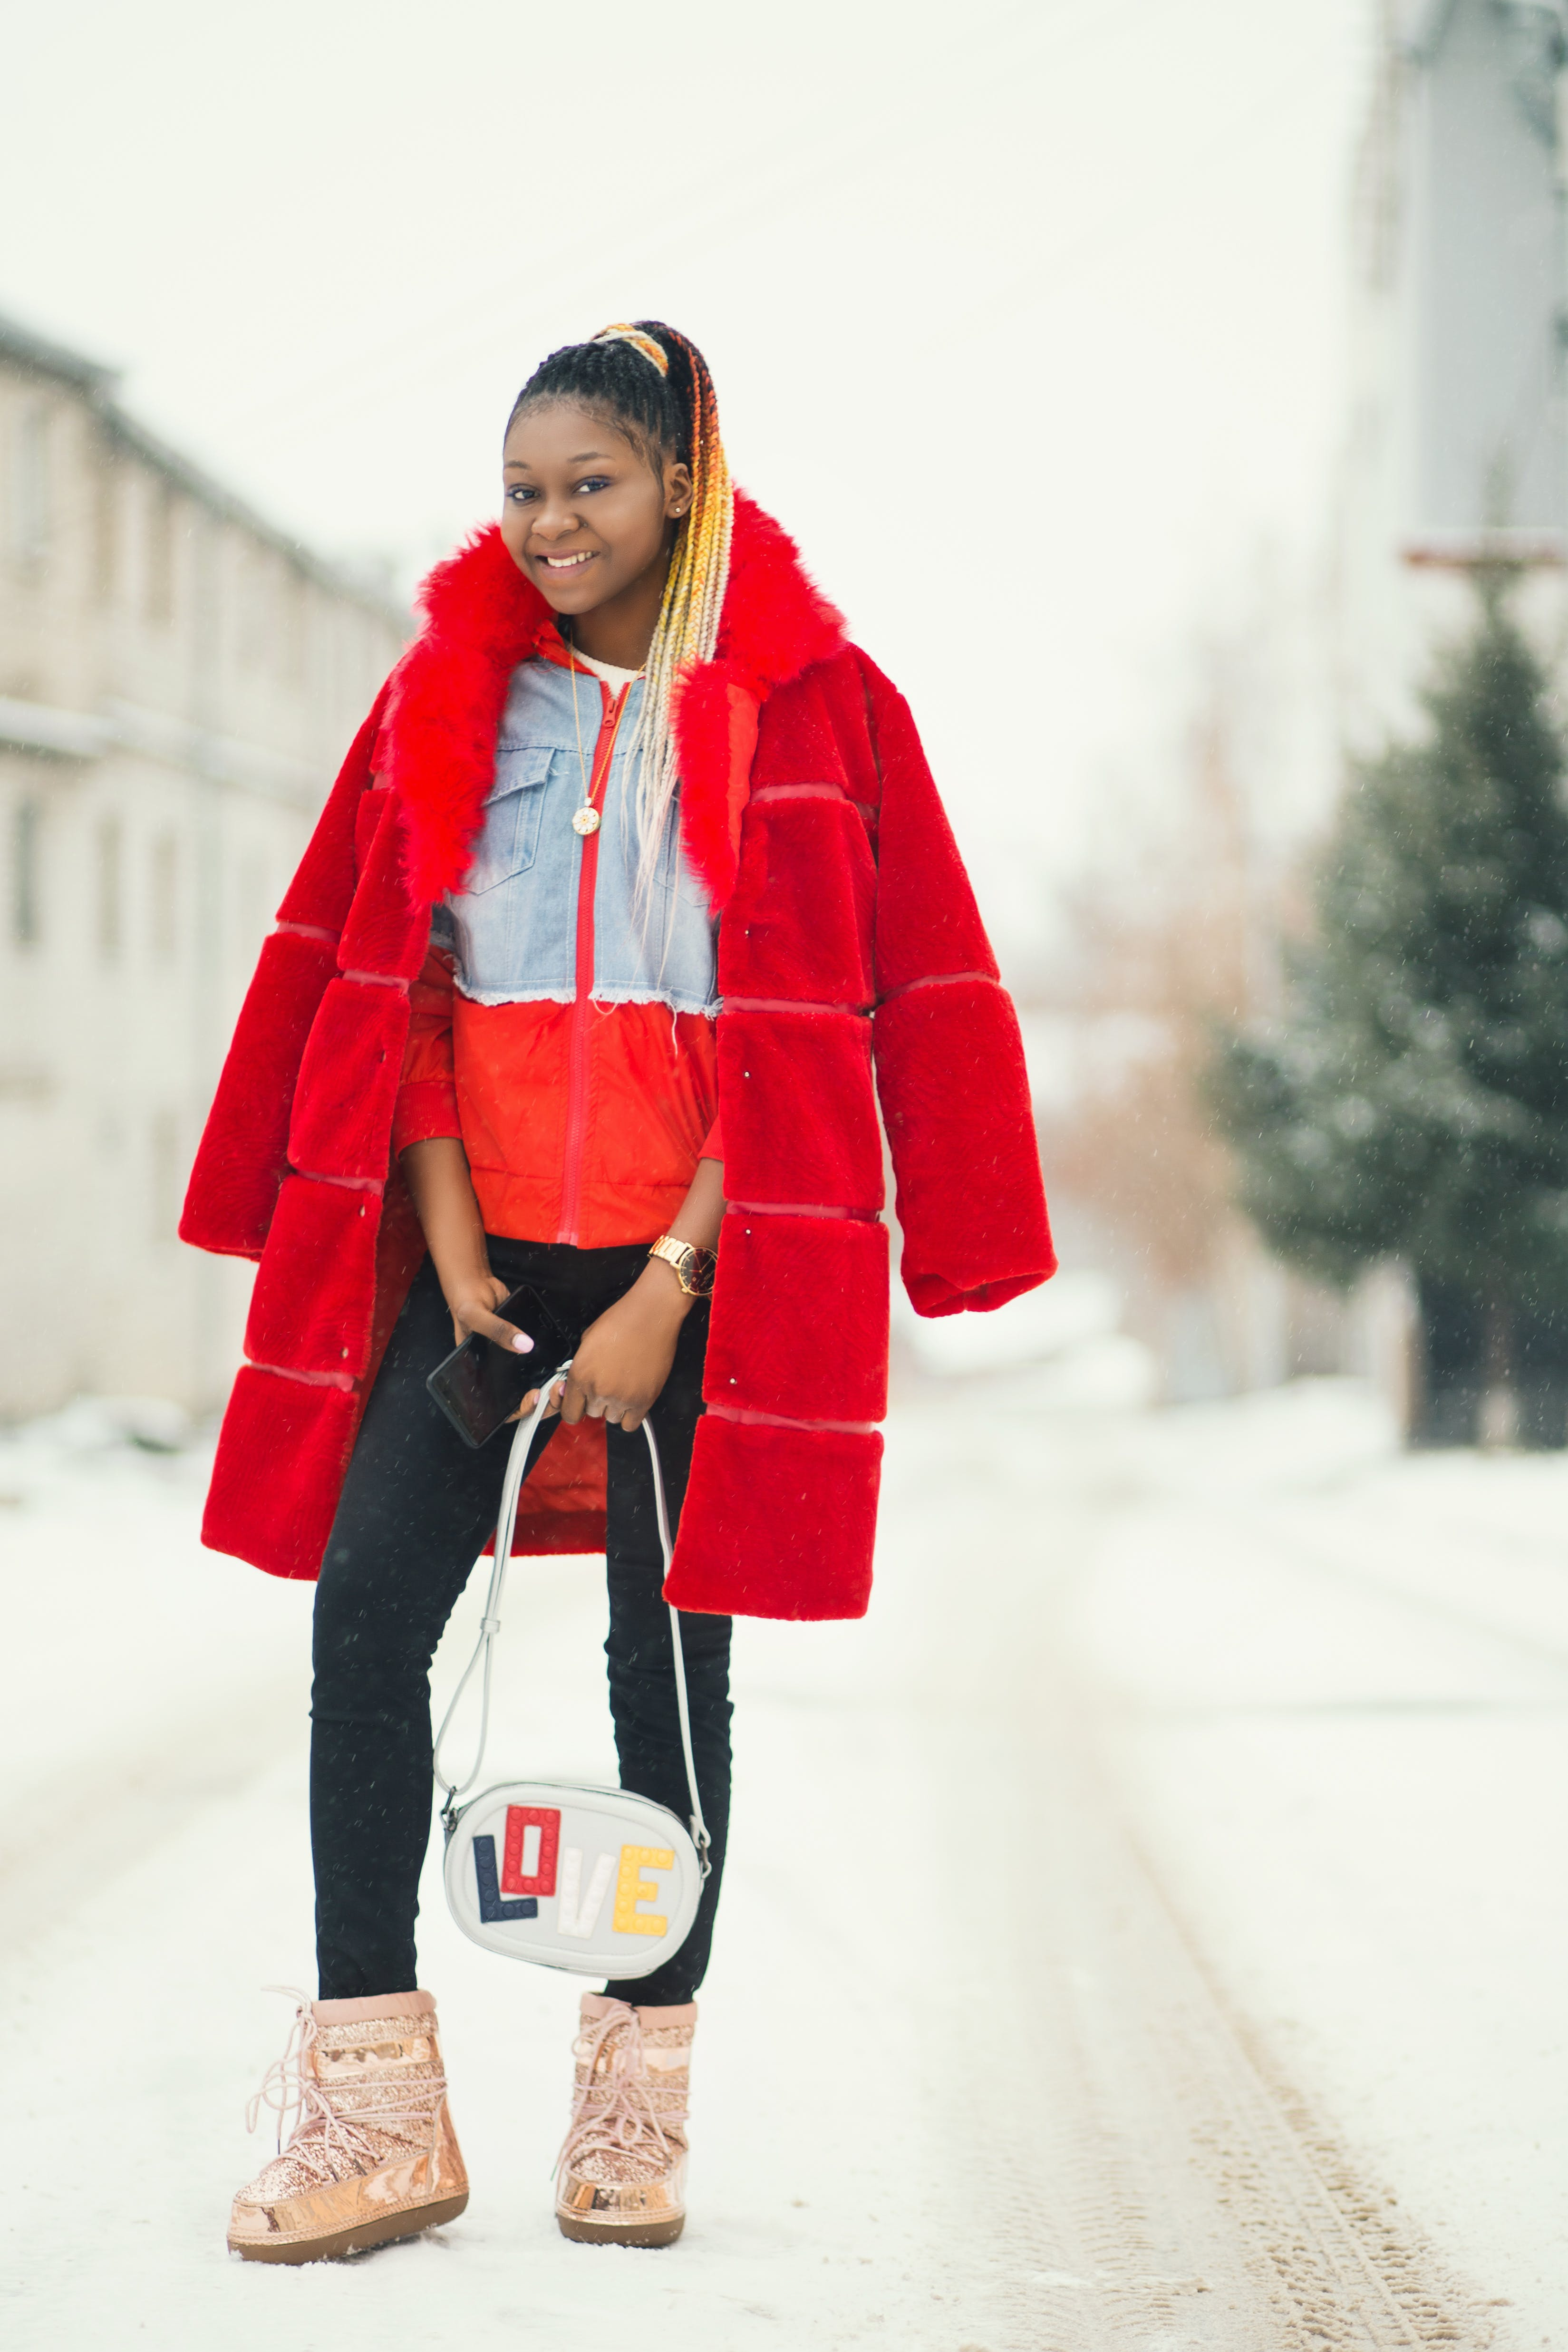 Woman Wearing Red Coat